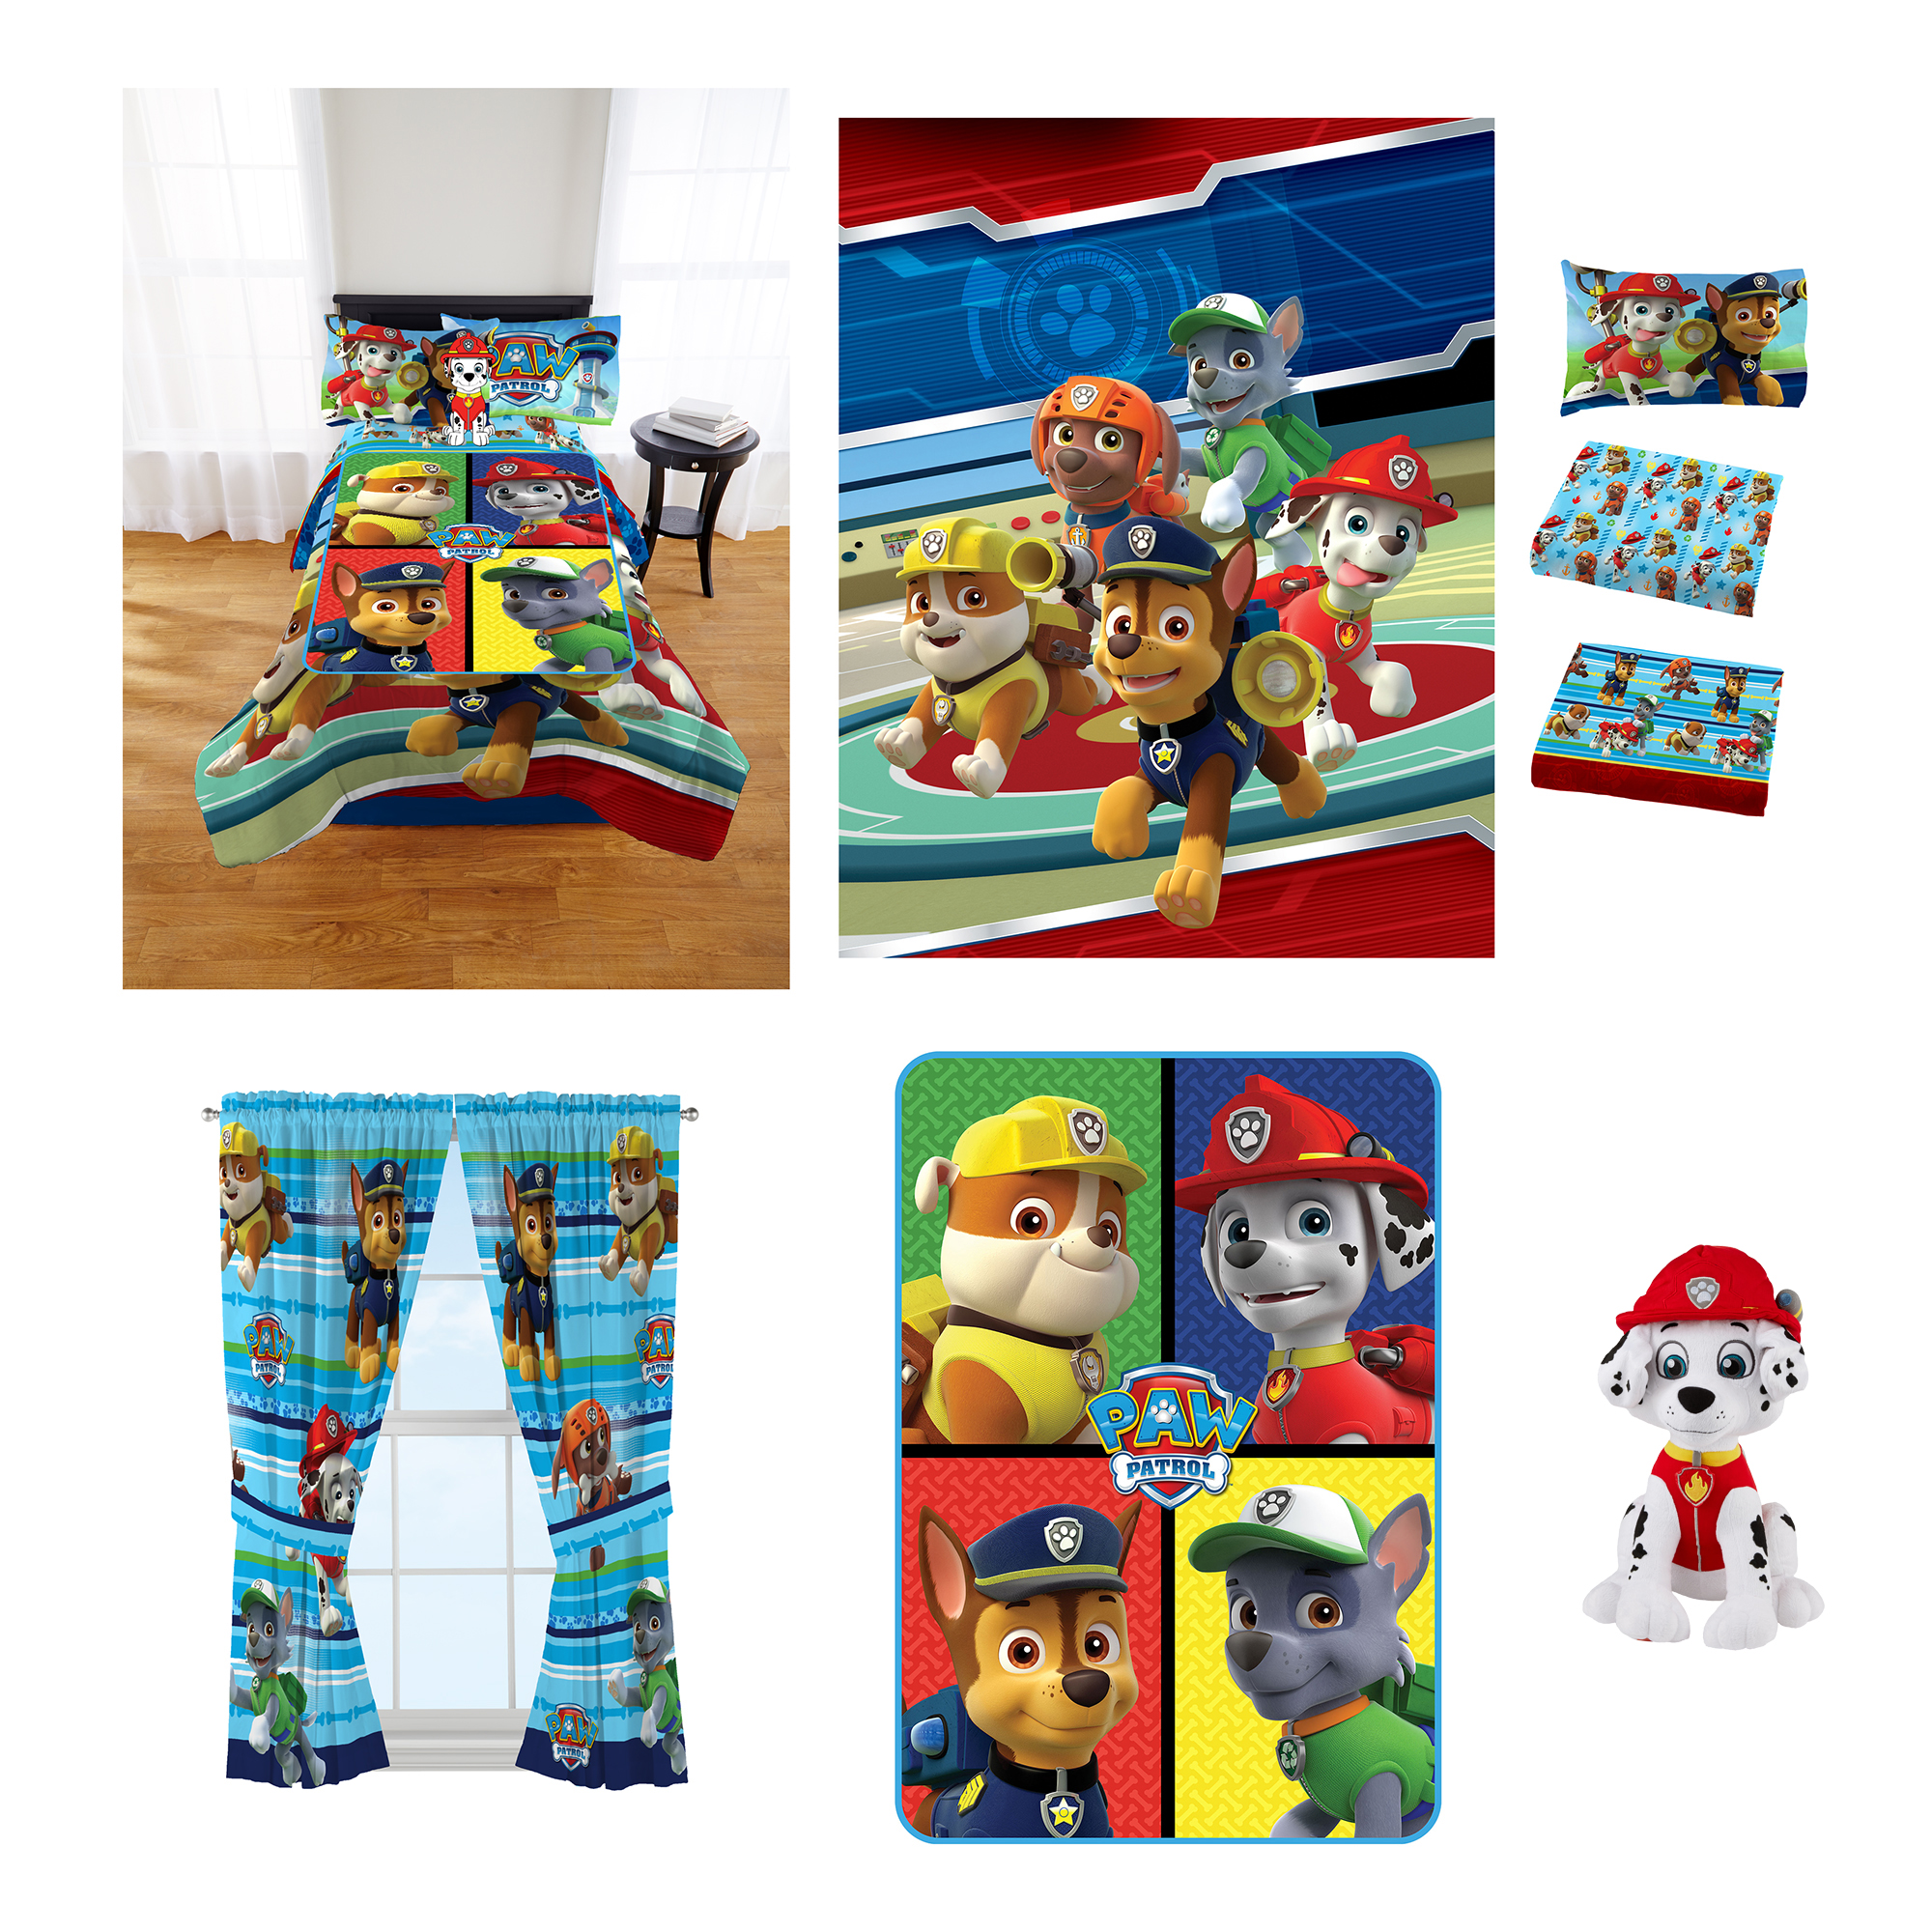 Paw Patrol Puppy Hero Room In A Bag Comes With Twin Comforter Pillow Buddy Sheet Set Curtains And Blanket Walmart Com Walmart Com